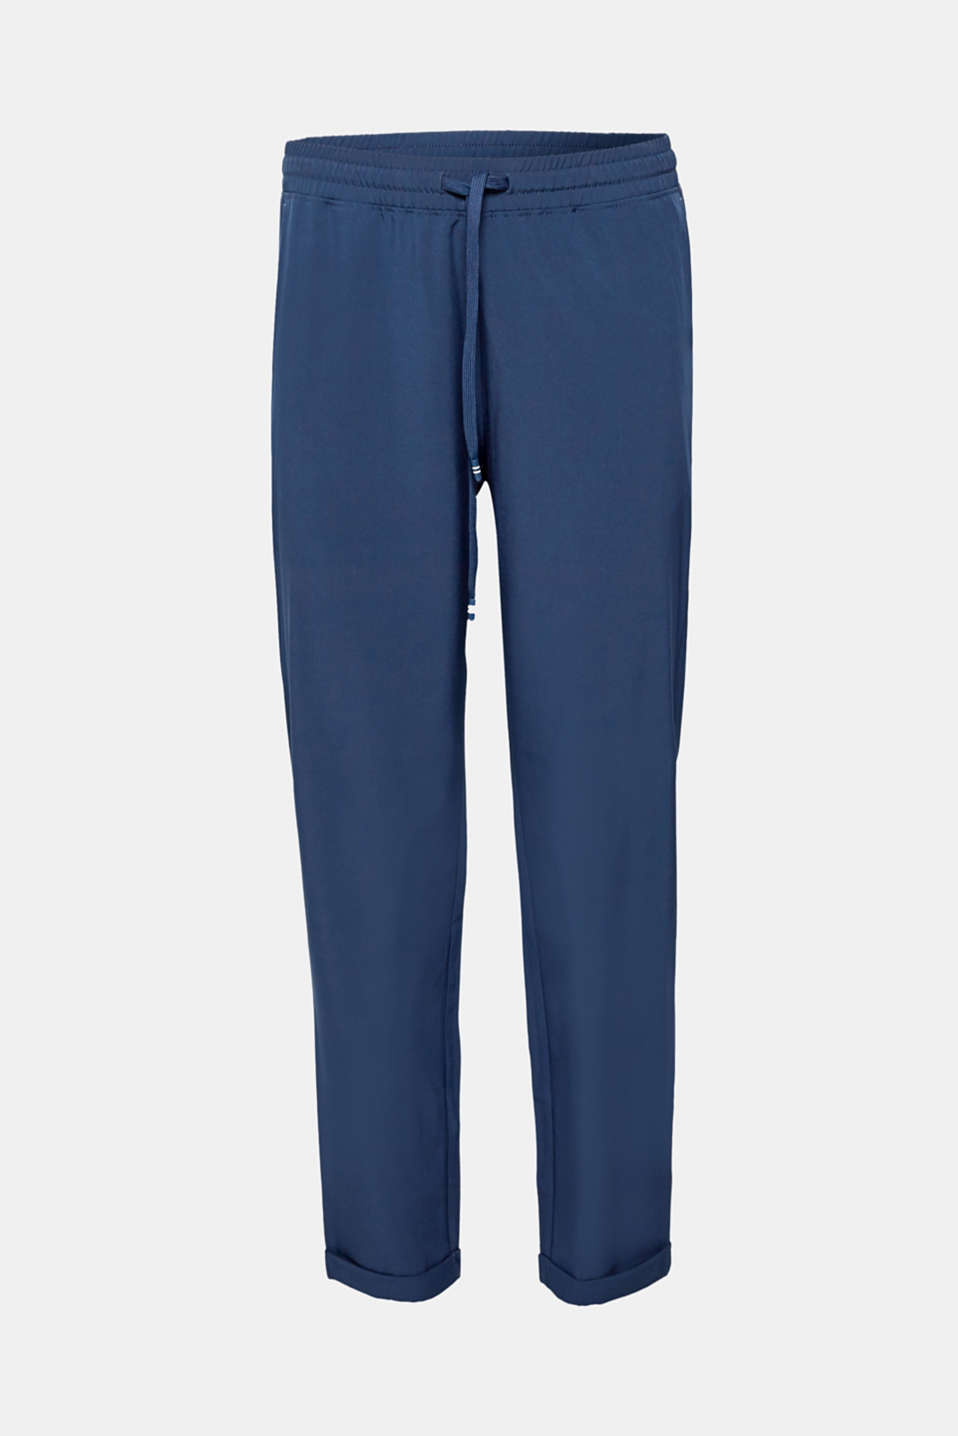 Lightweight woven trousers with turn-up hems, E-DRY, NAVY, detail image number 5